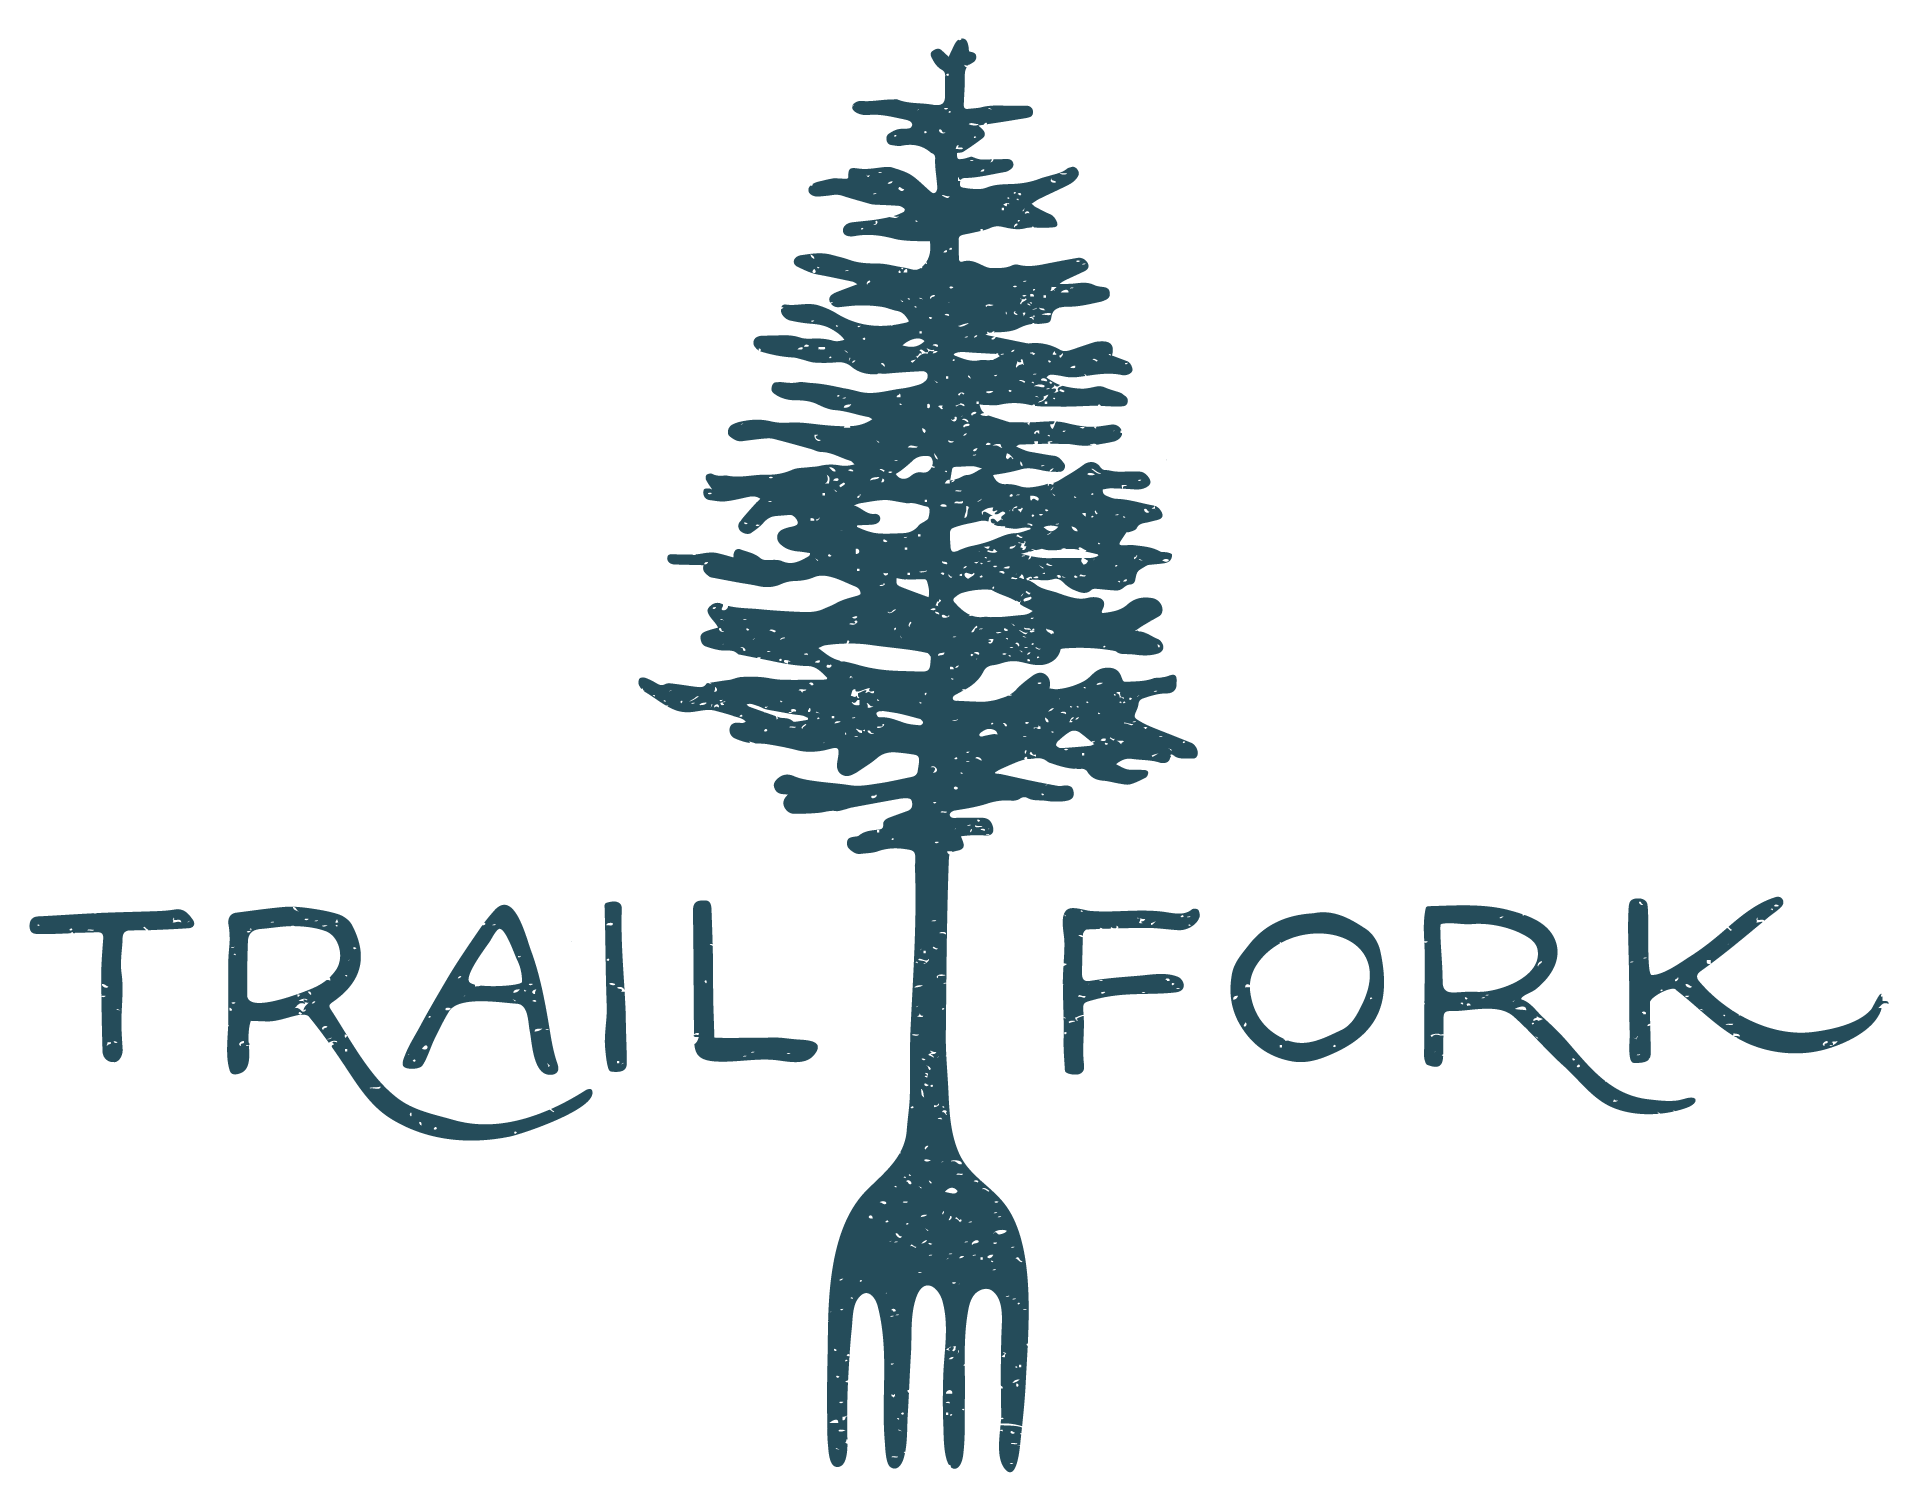 trail-fork-branding-final-distressed-blue.png